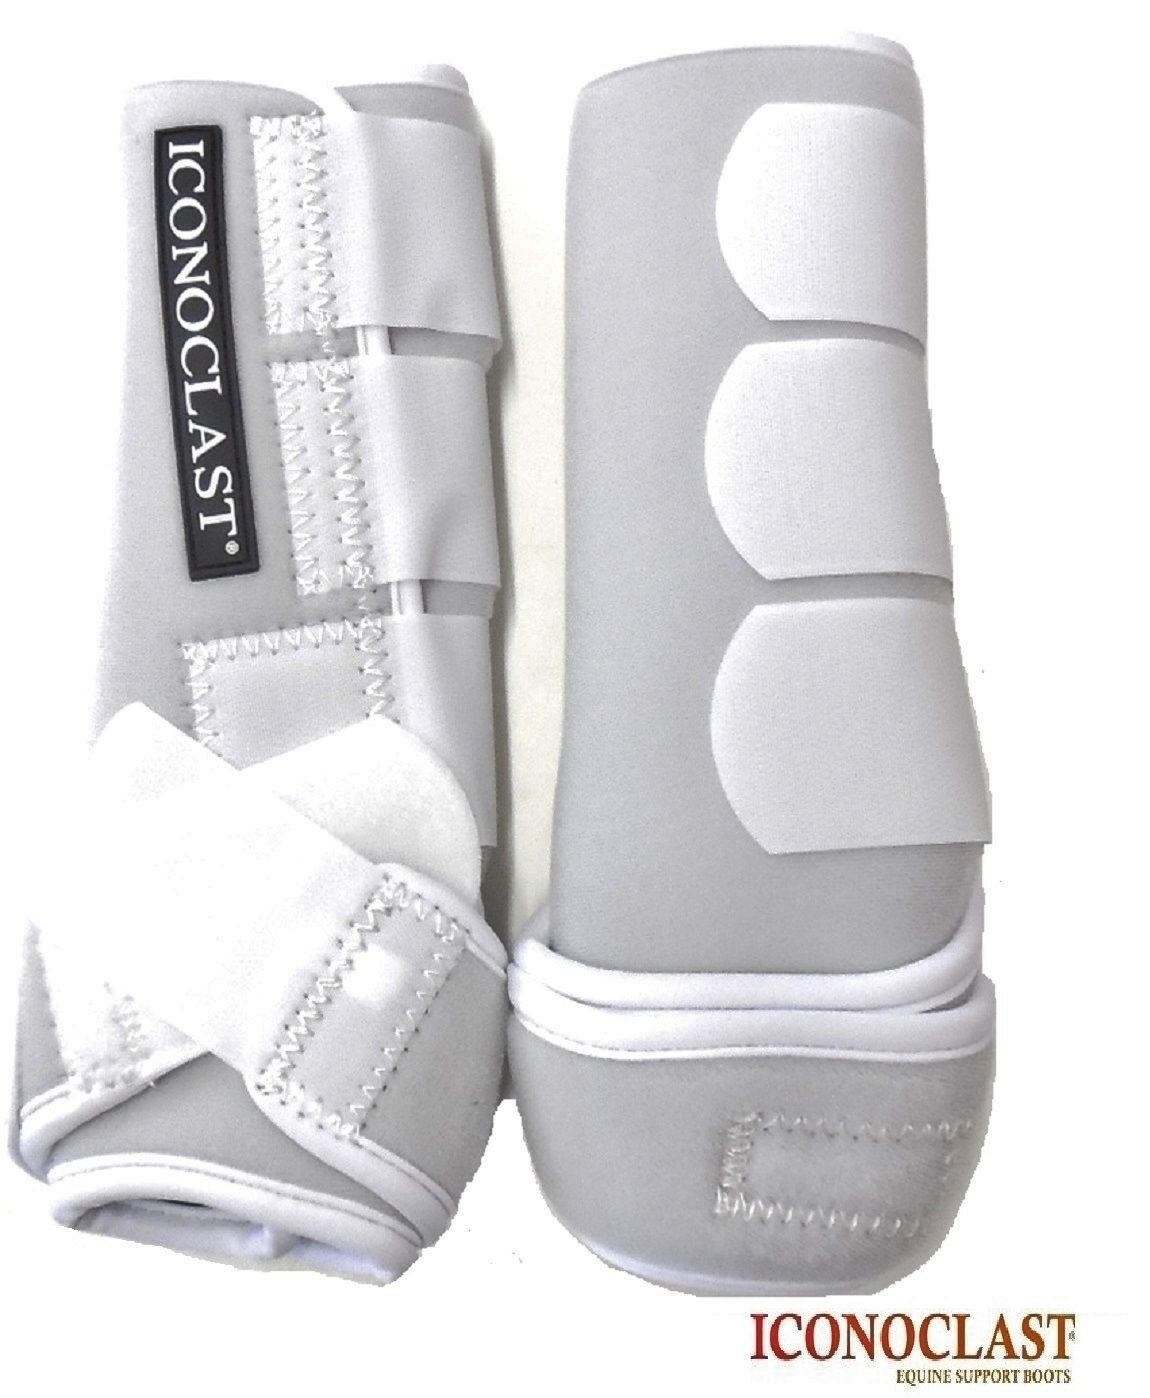 Iconoclast Orthopedic Sport Boots Hind Legs Large White New Free Shipping